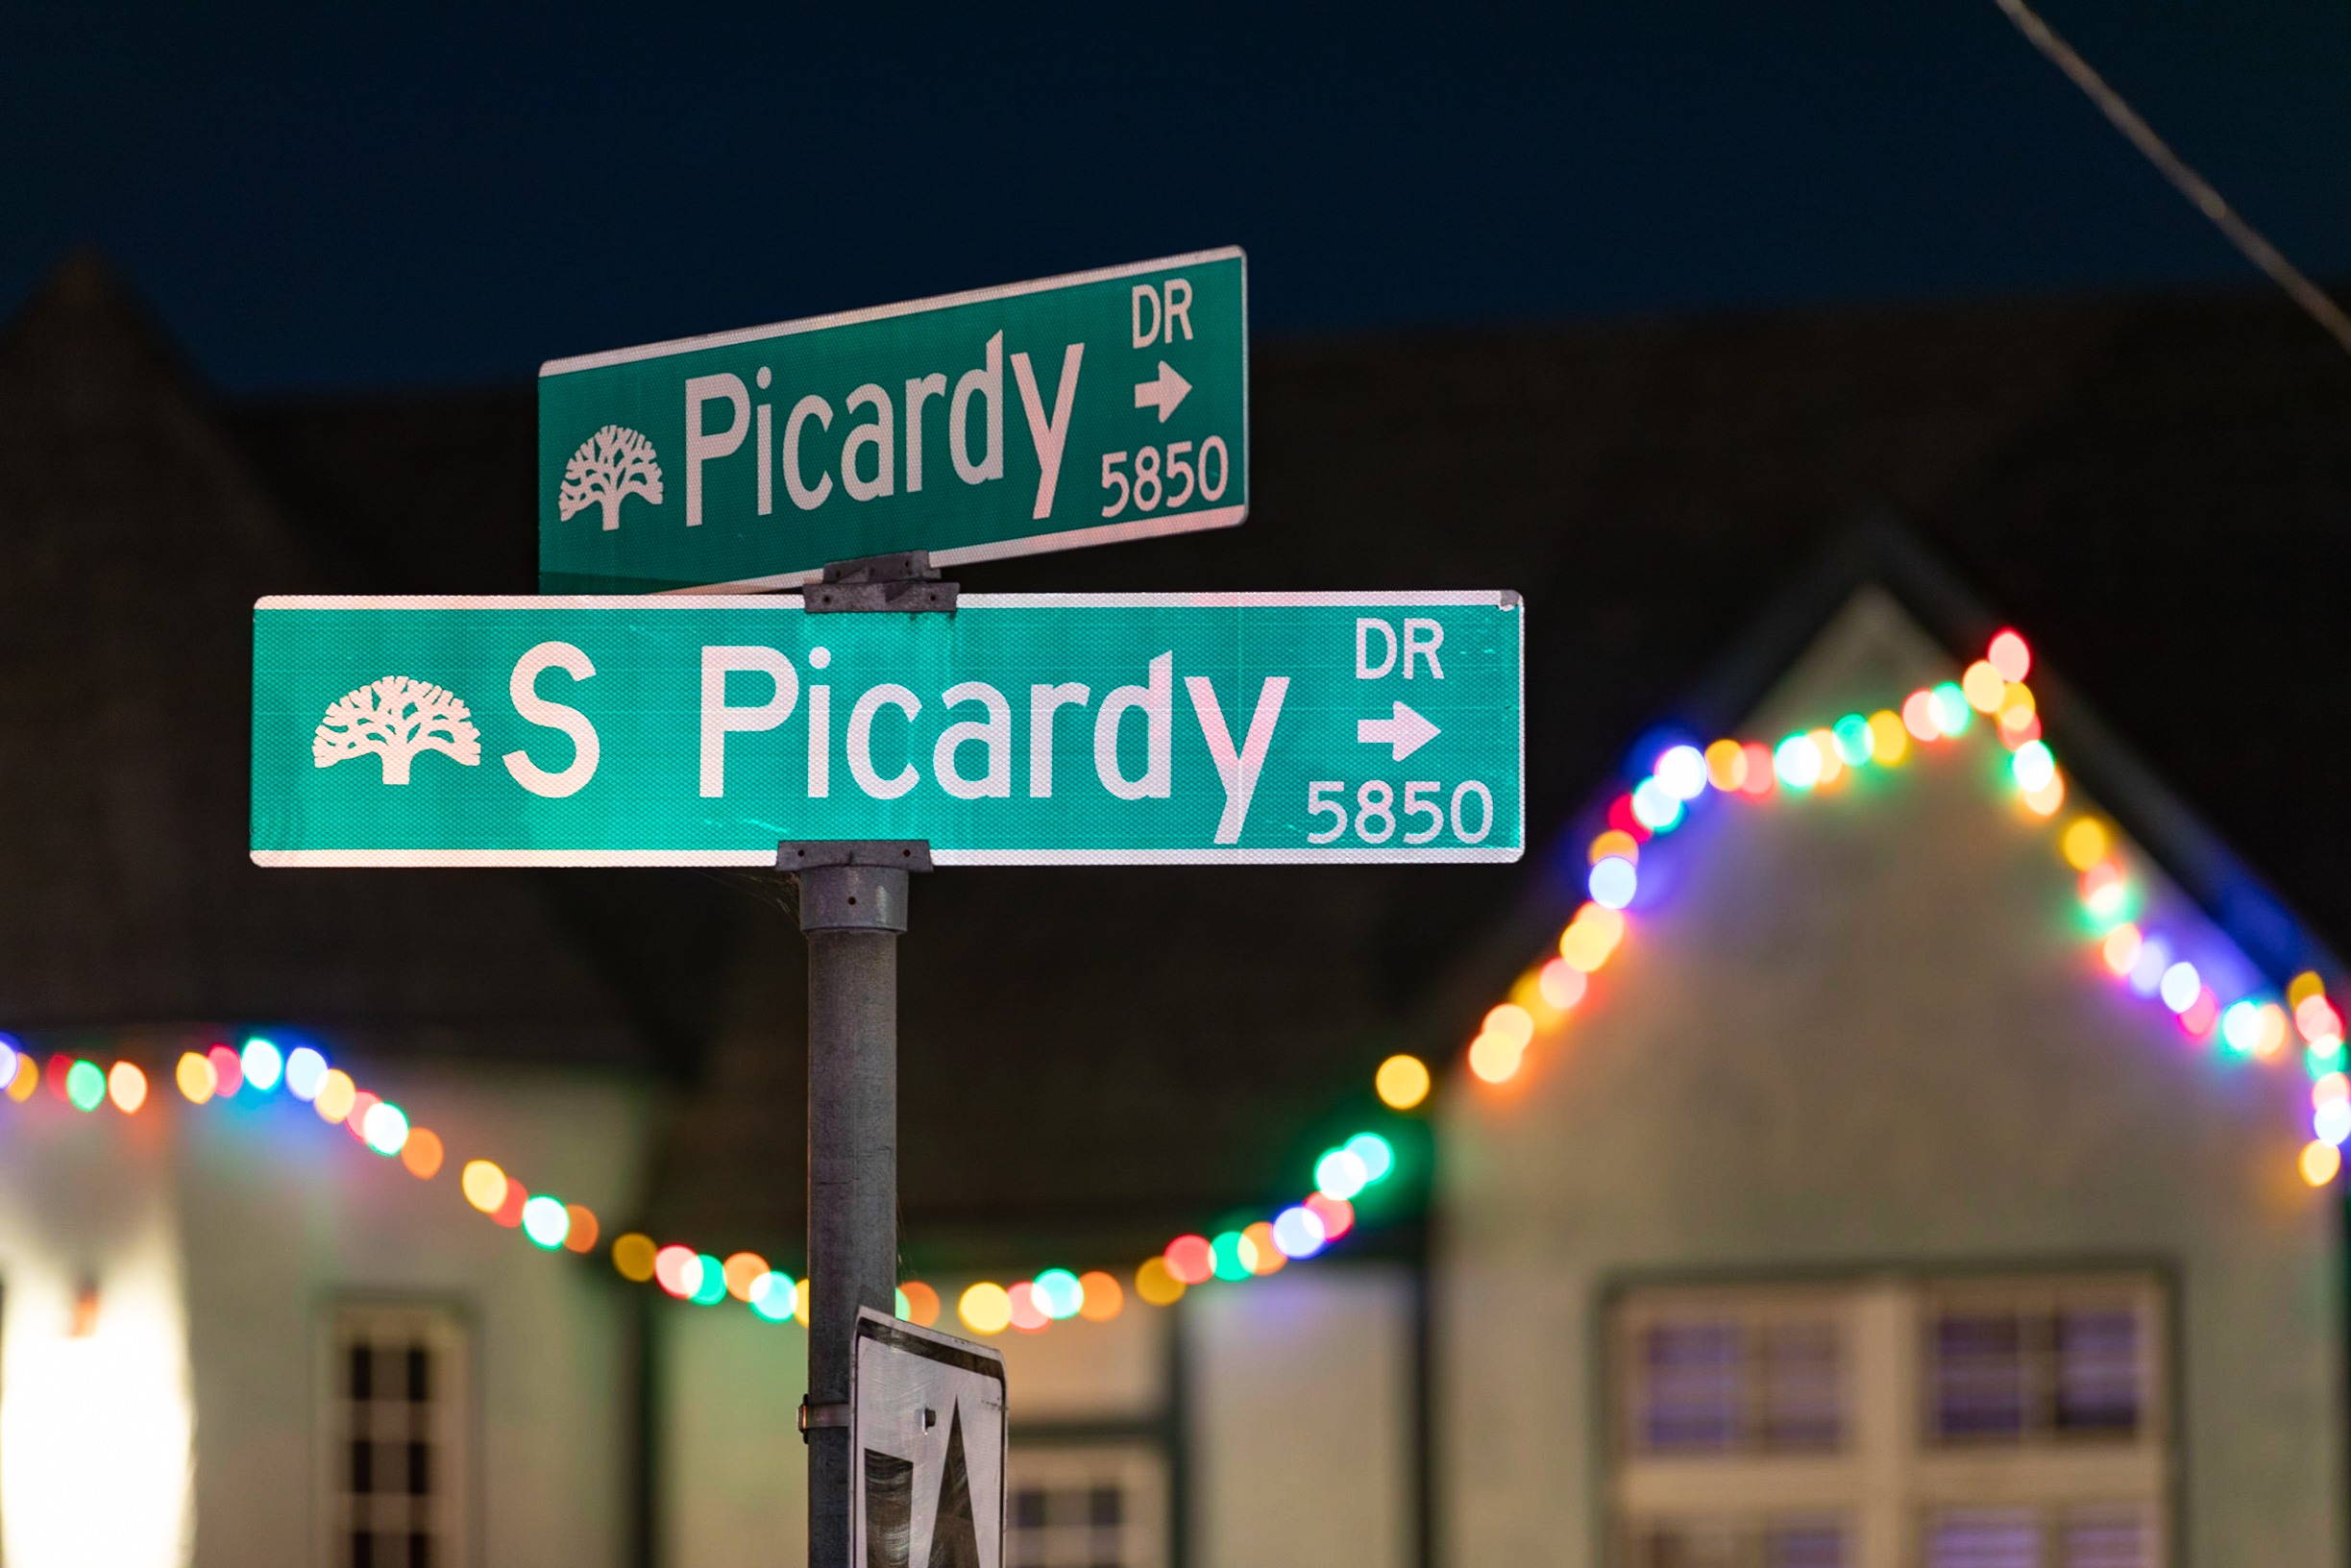 Picardy Dr street sign and Christmas decorations covering the house Picardy Drive residents.